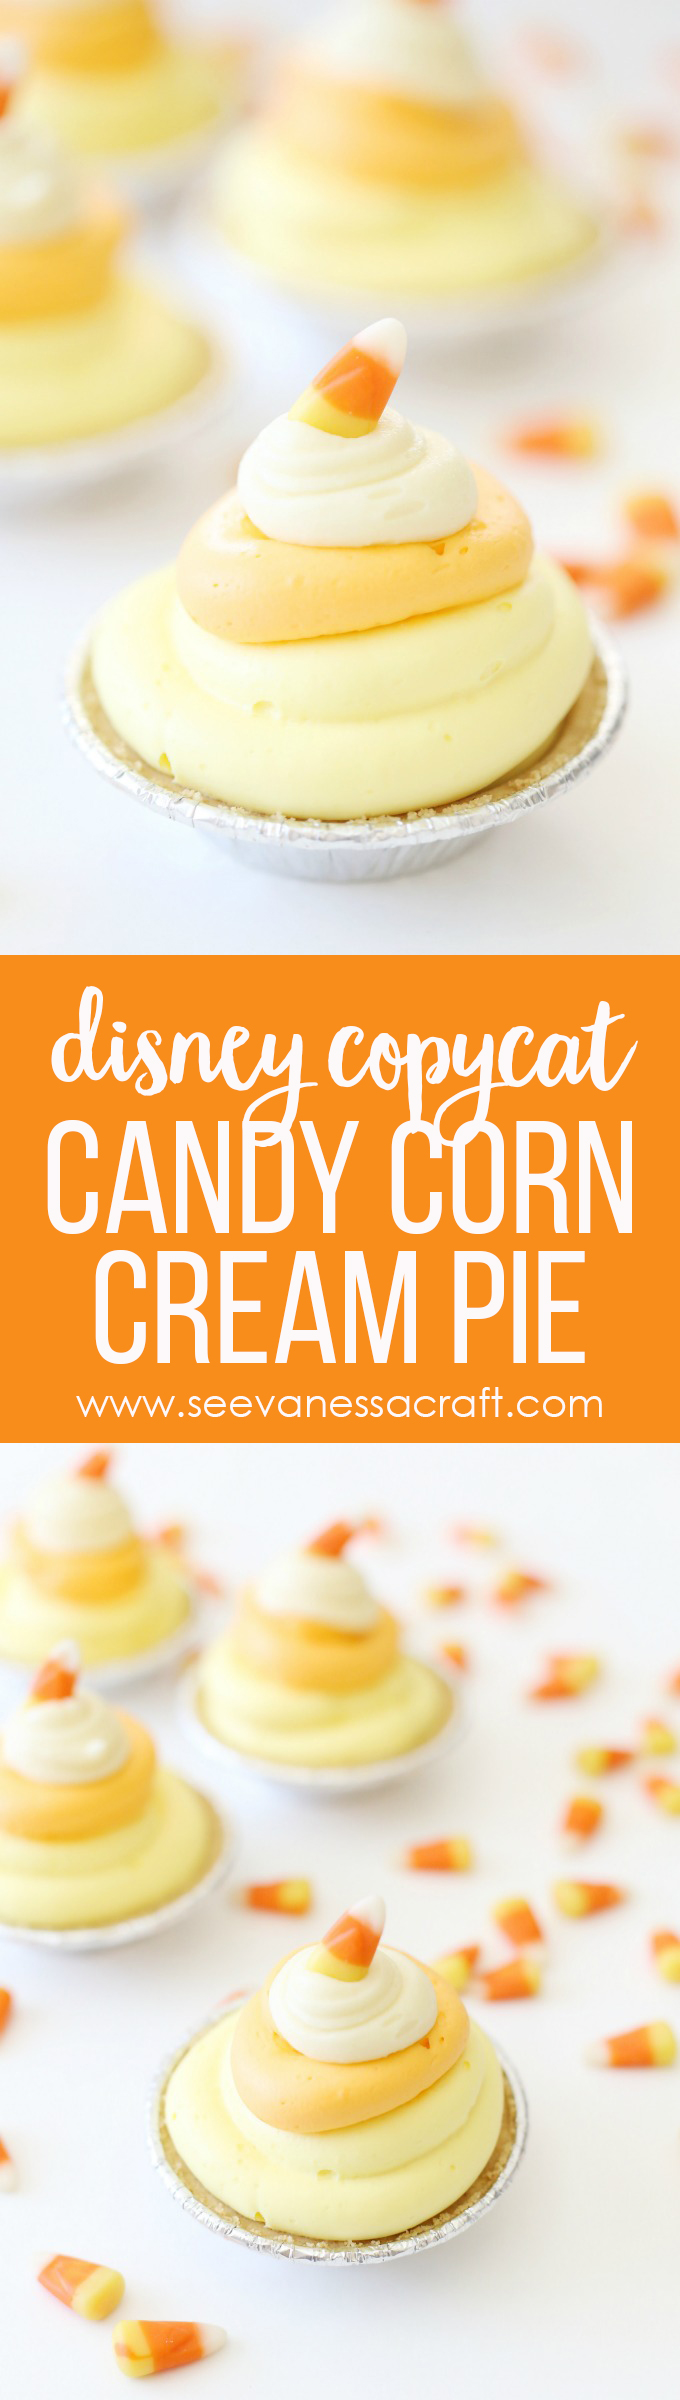 Disneyland Cars Land Copycat Candy Corn Cream Mini Pie Recipe copy